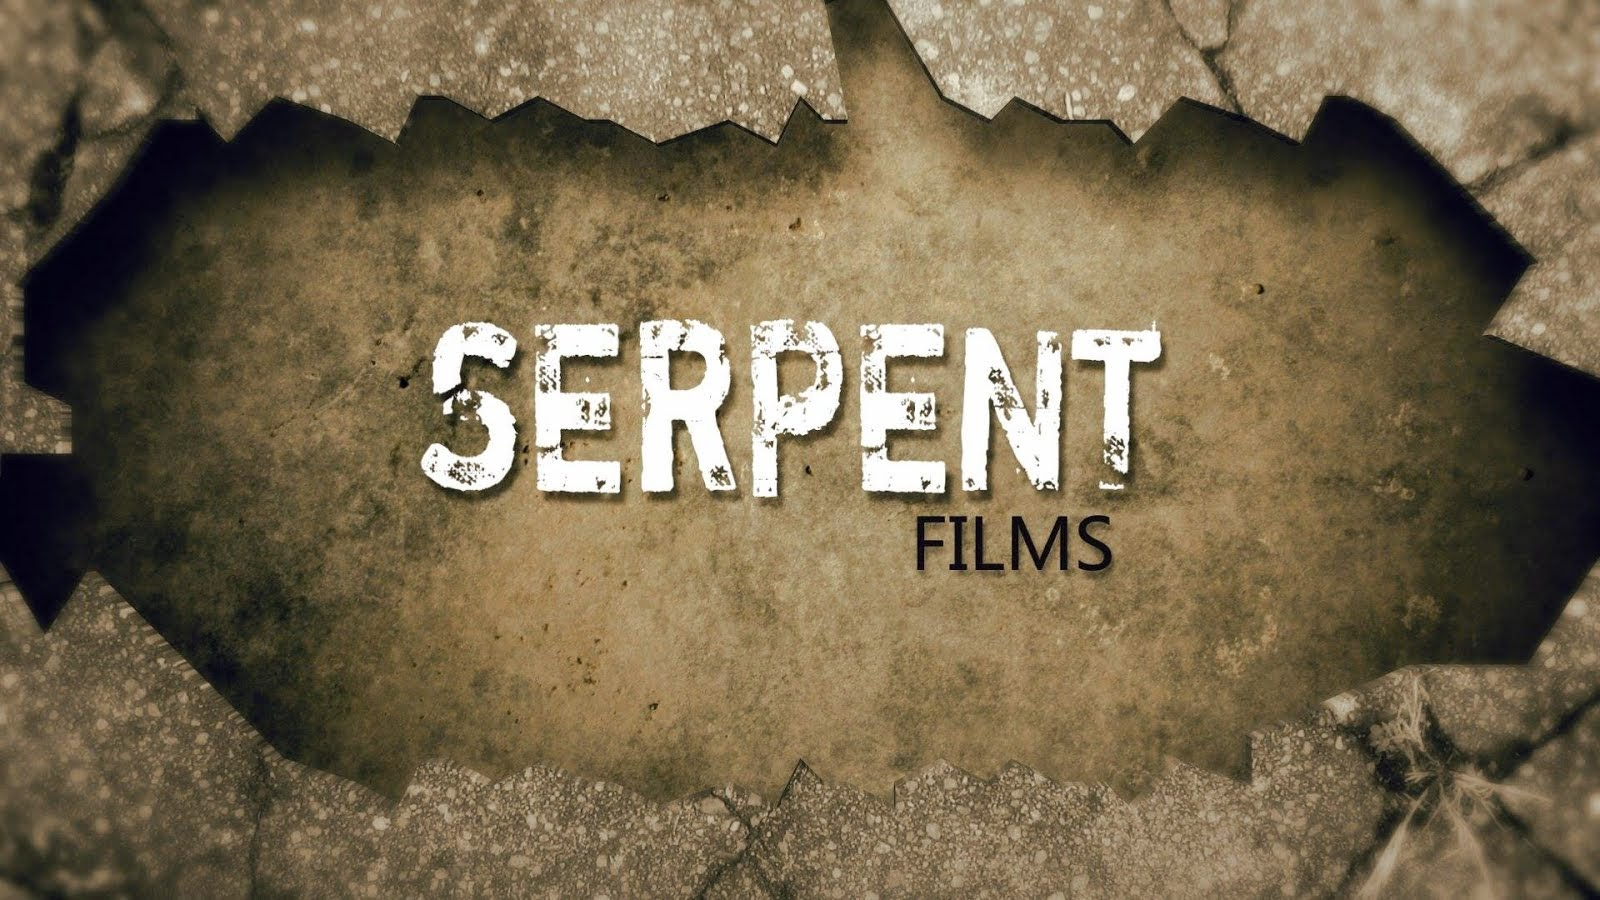 Serpent Films